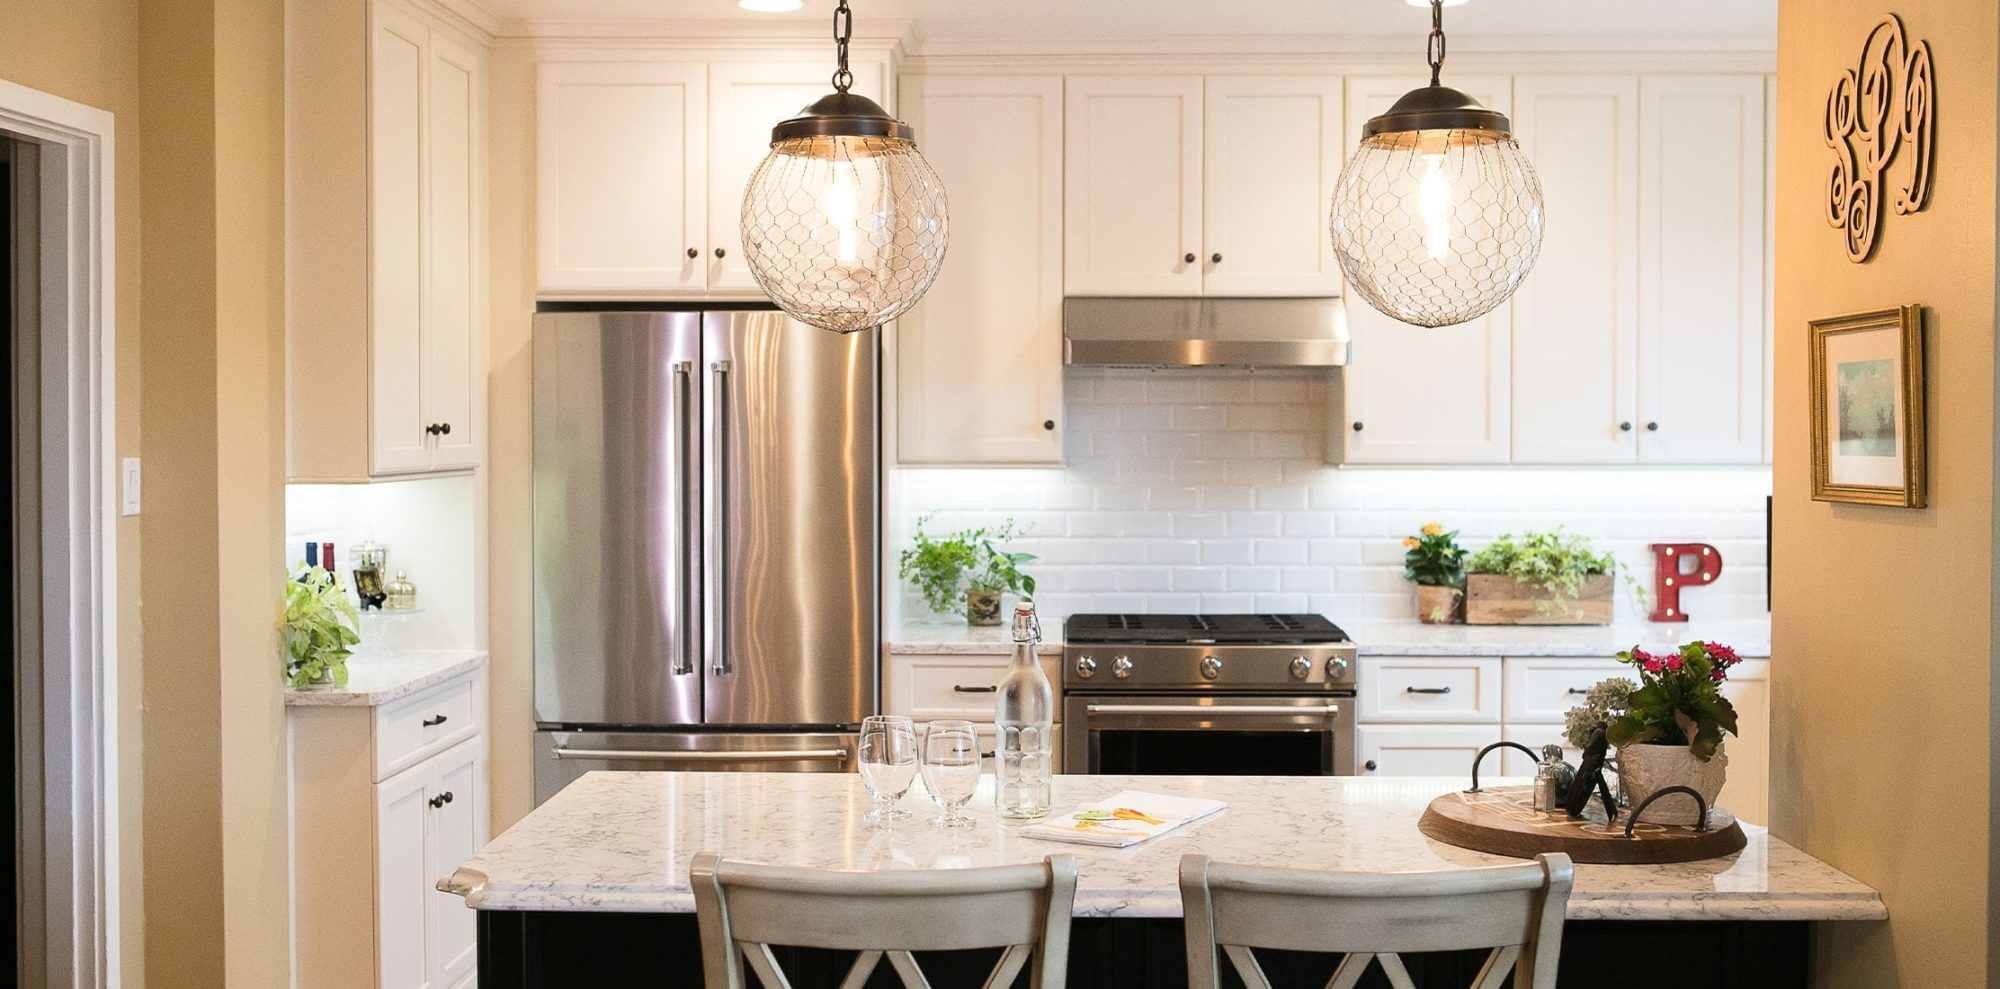 large globe pendant lights over marble seating area in renovated kitchen